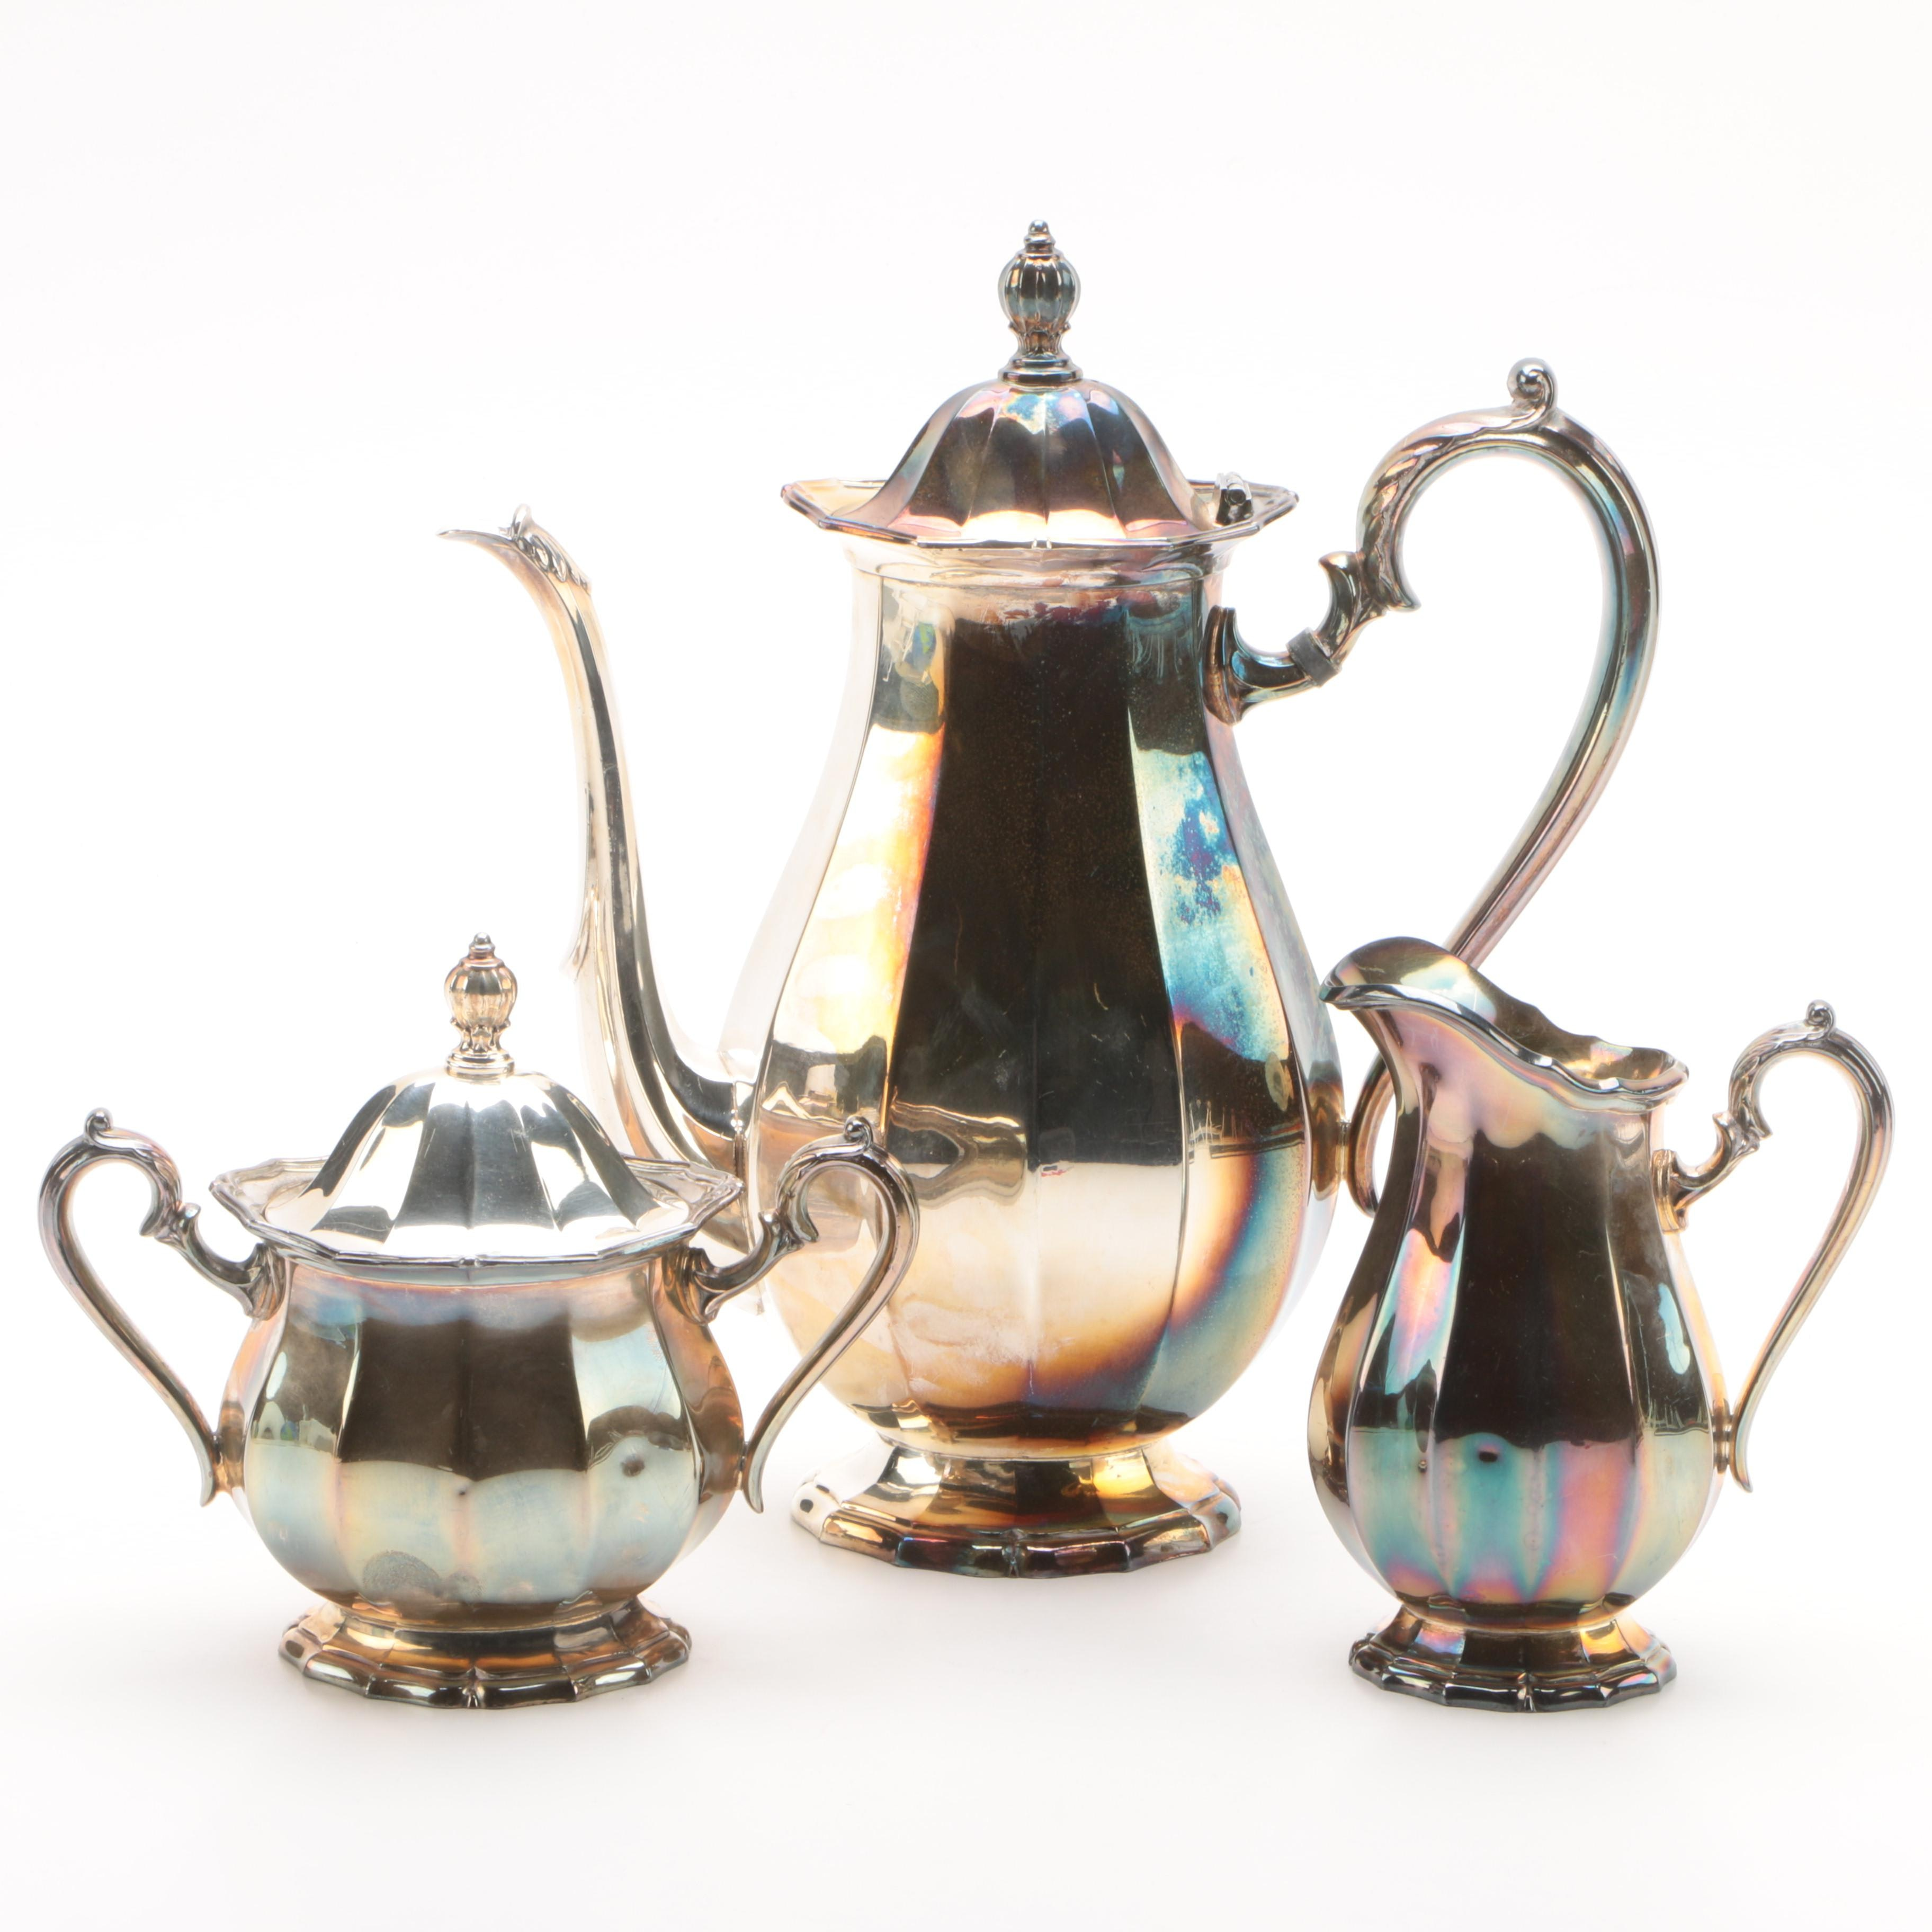 Webster-Wilcox Silver Plate Three-Piece Coffee Set